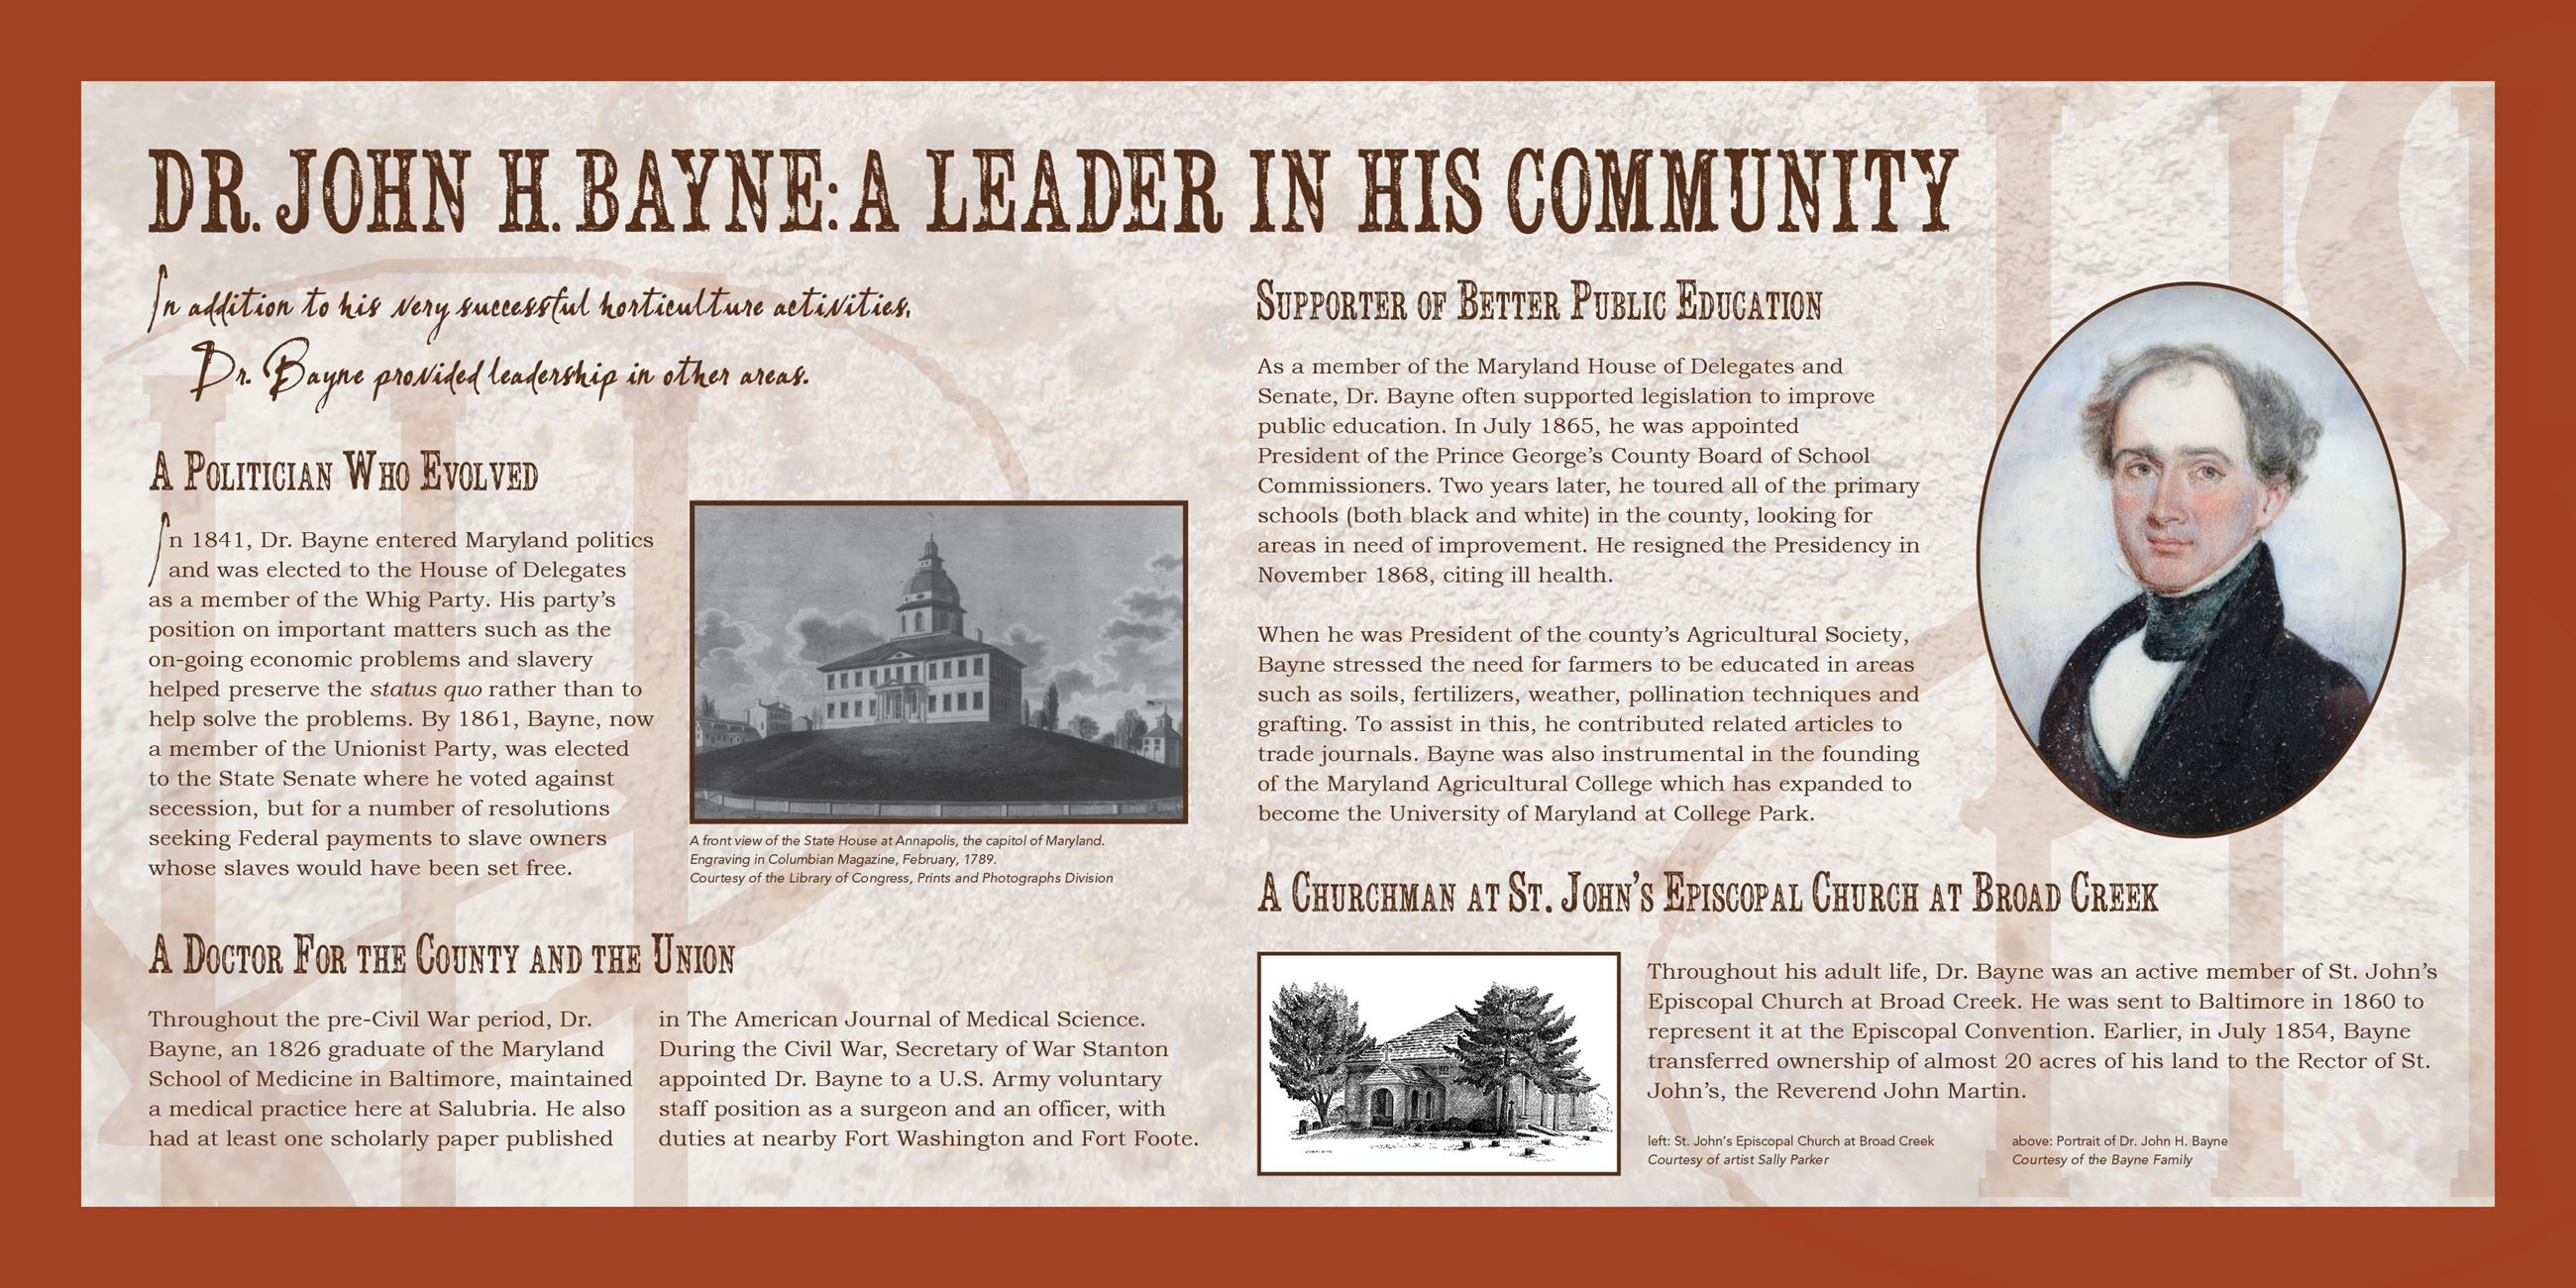 Dr. John H. Bayne - A Leader in His Community